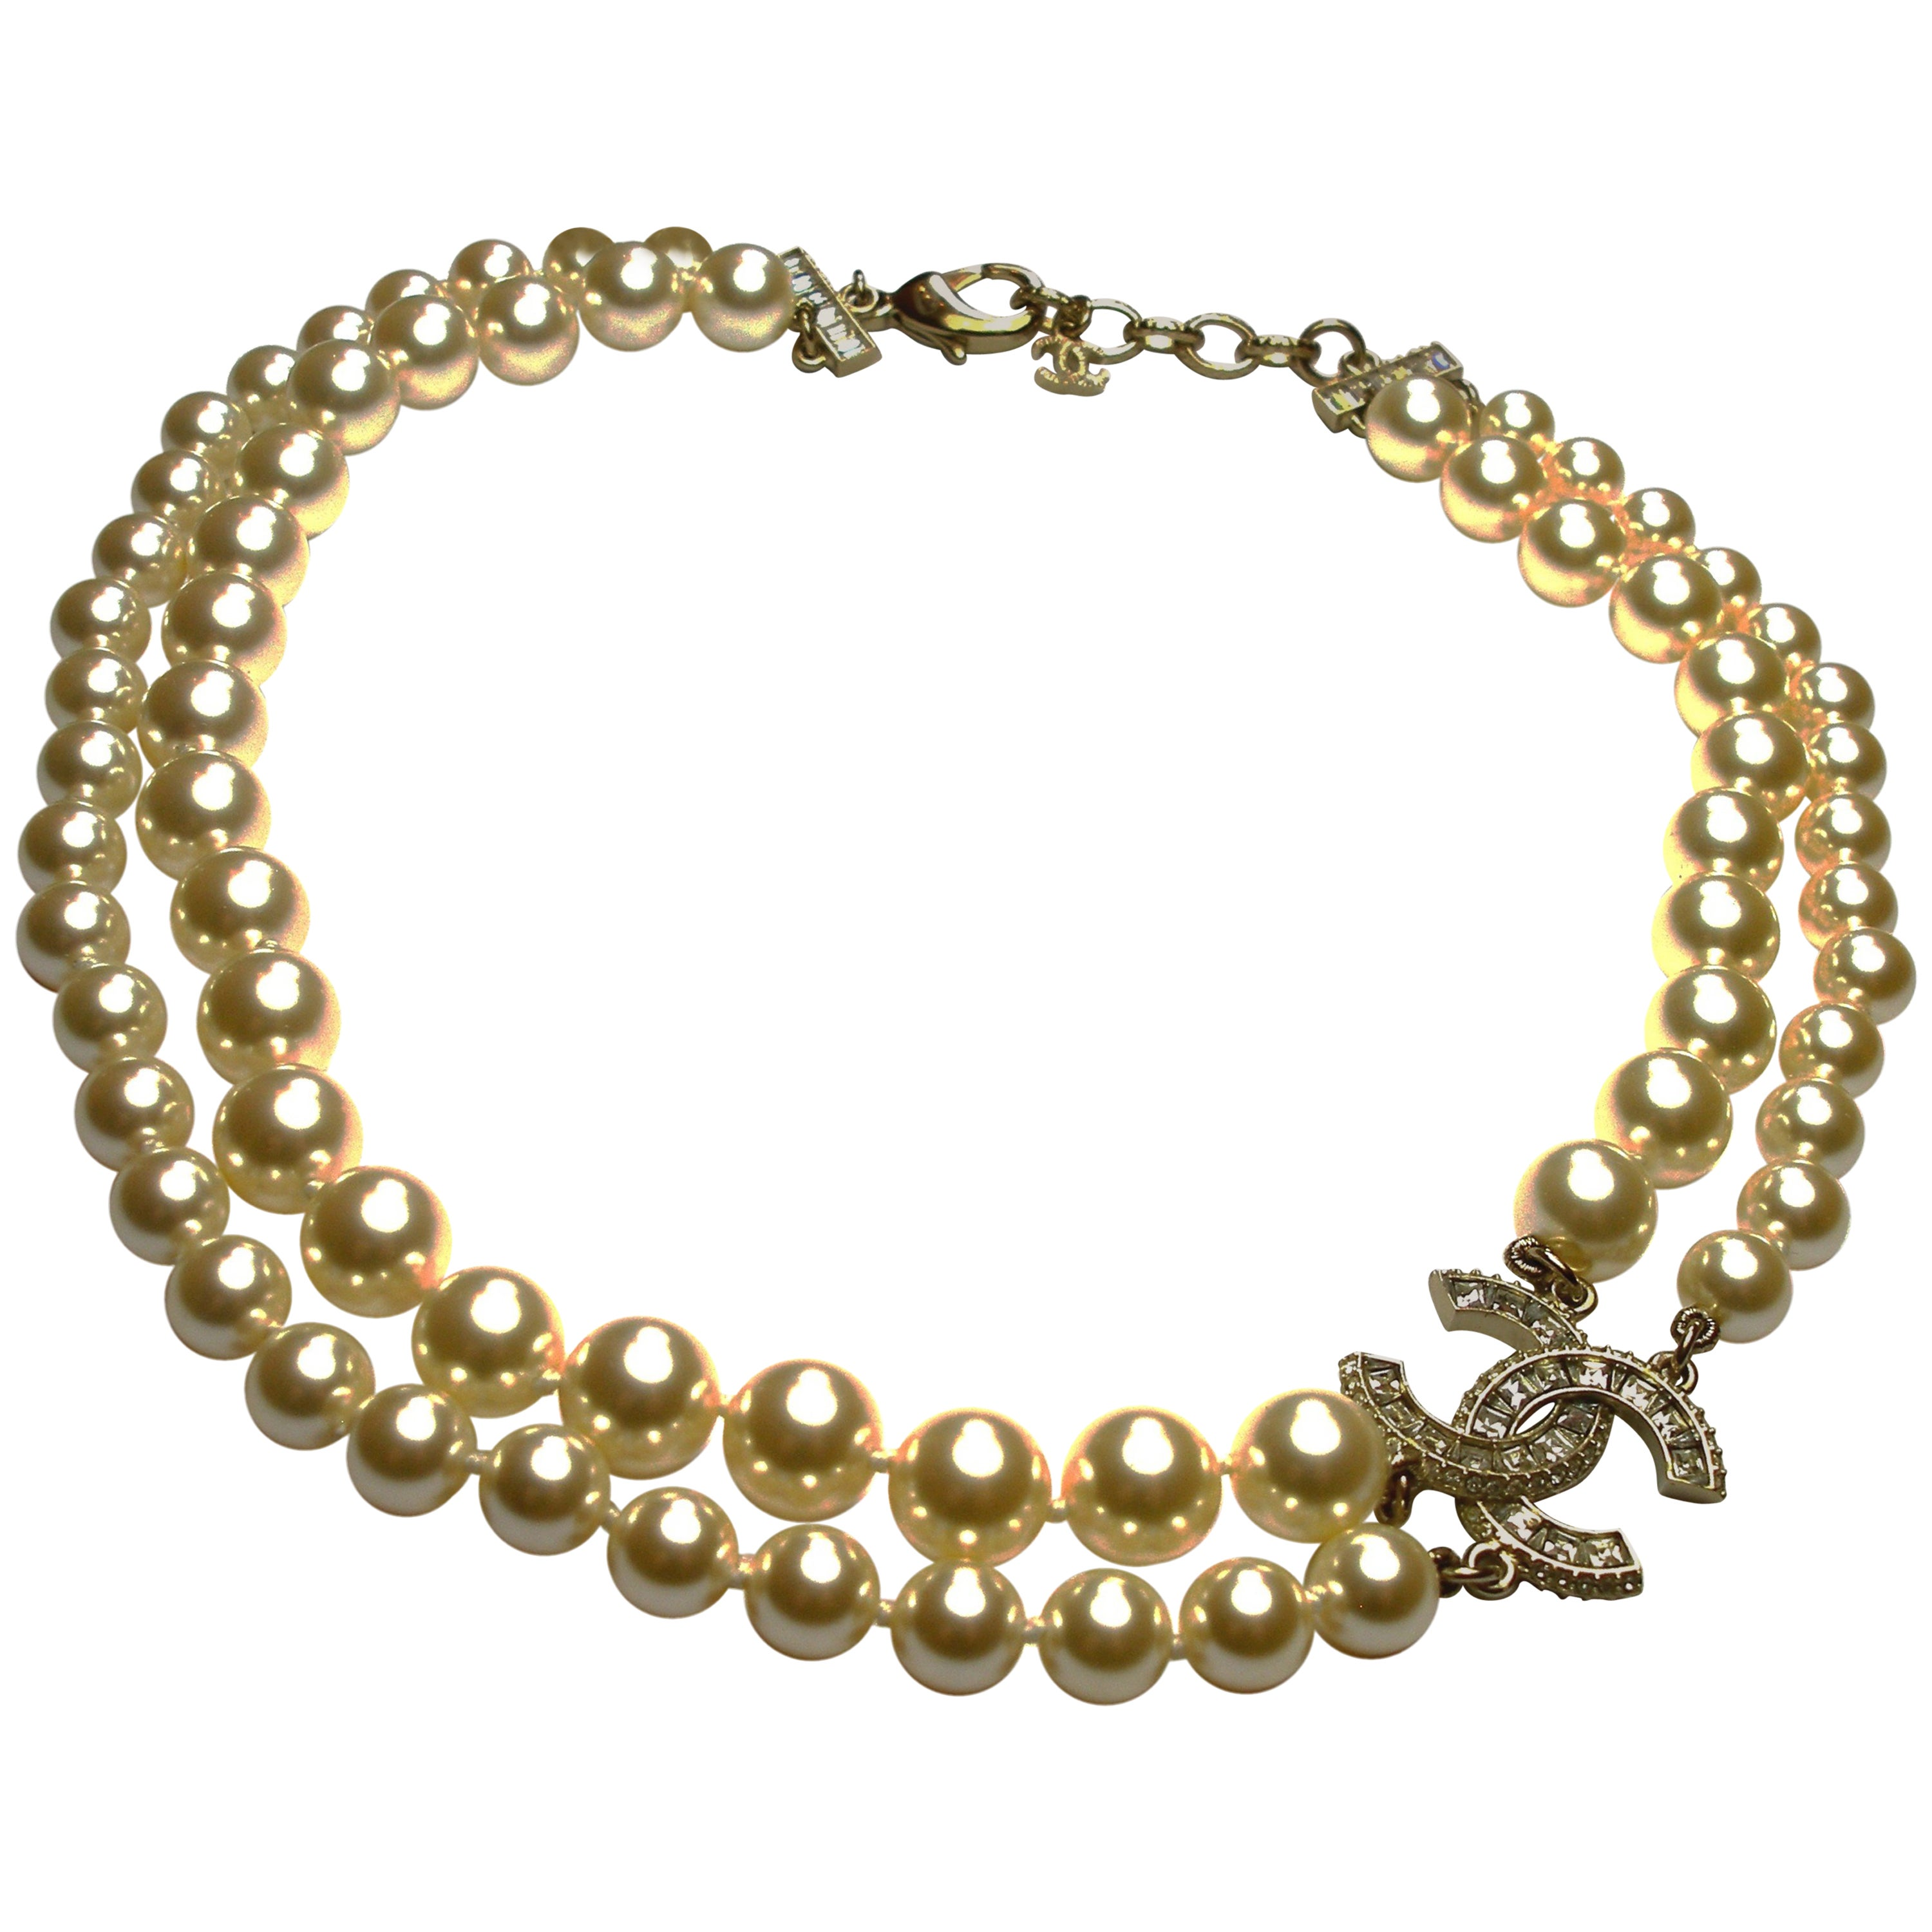 36cca24d522e6 Chanel 2016 Double Strand Gold CC Créme Pearl Necklace For Sale at 1stdibs